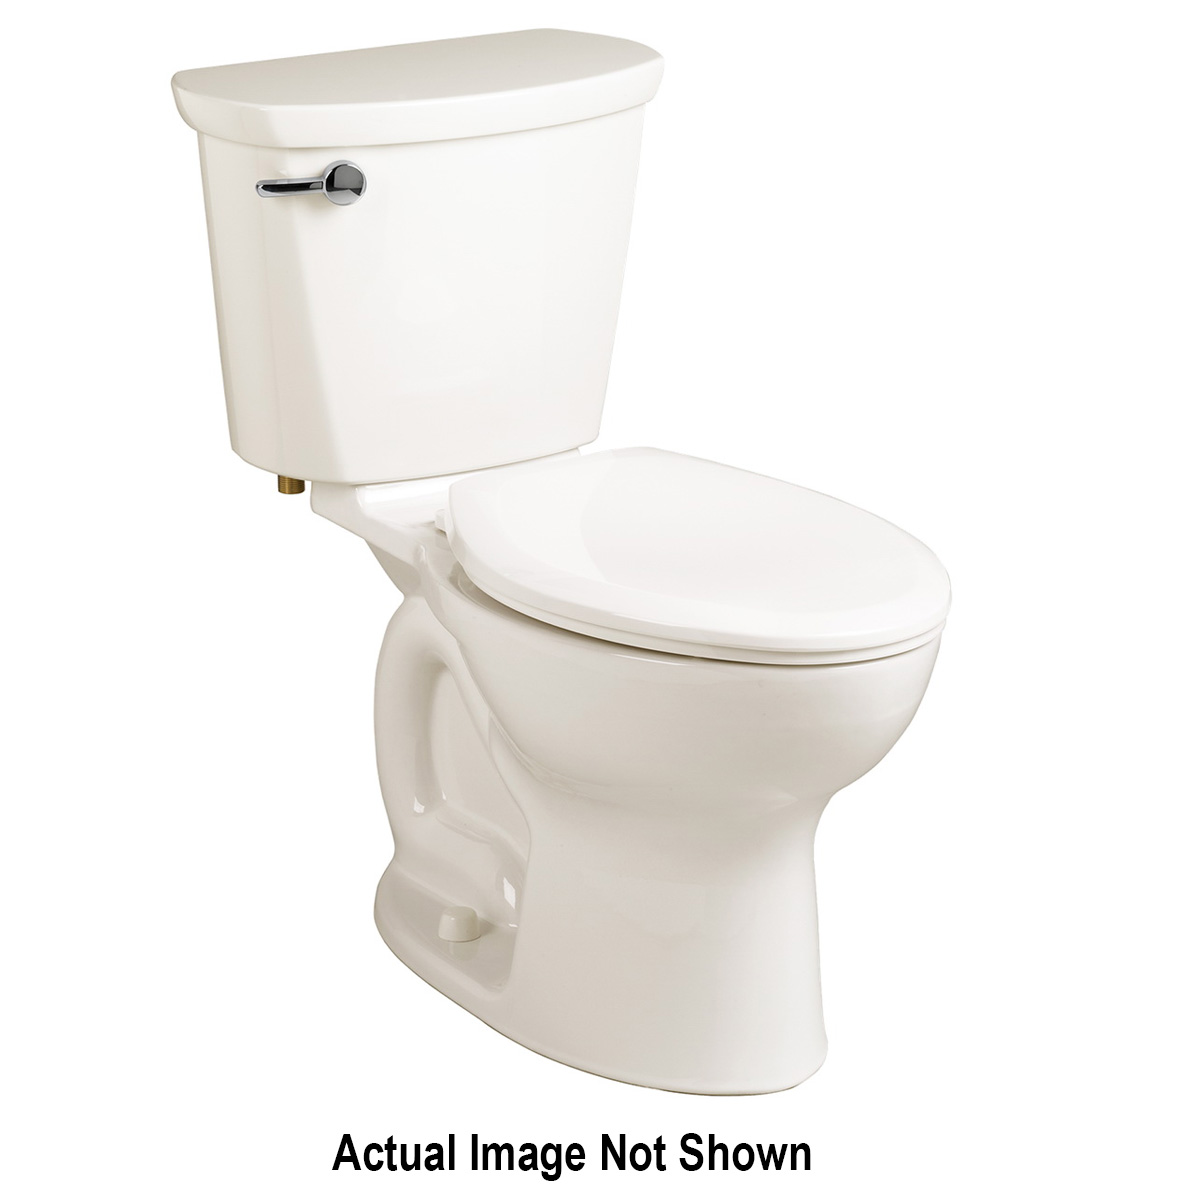 American Standard 3517C101.020 Cadet® Pro™ Toilet Bowl, Elongated, 8 x 9 in Water Surface, 2-1/8 in Trapway, Import